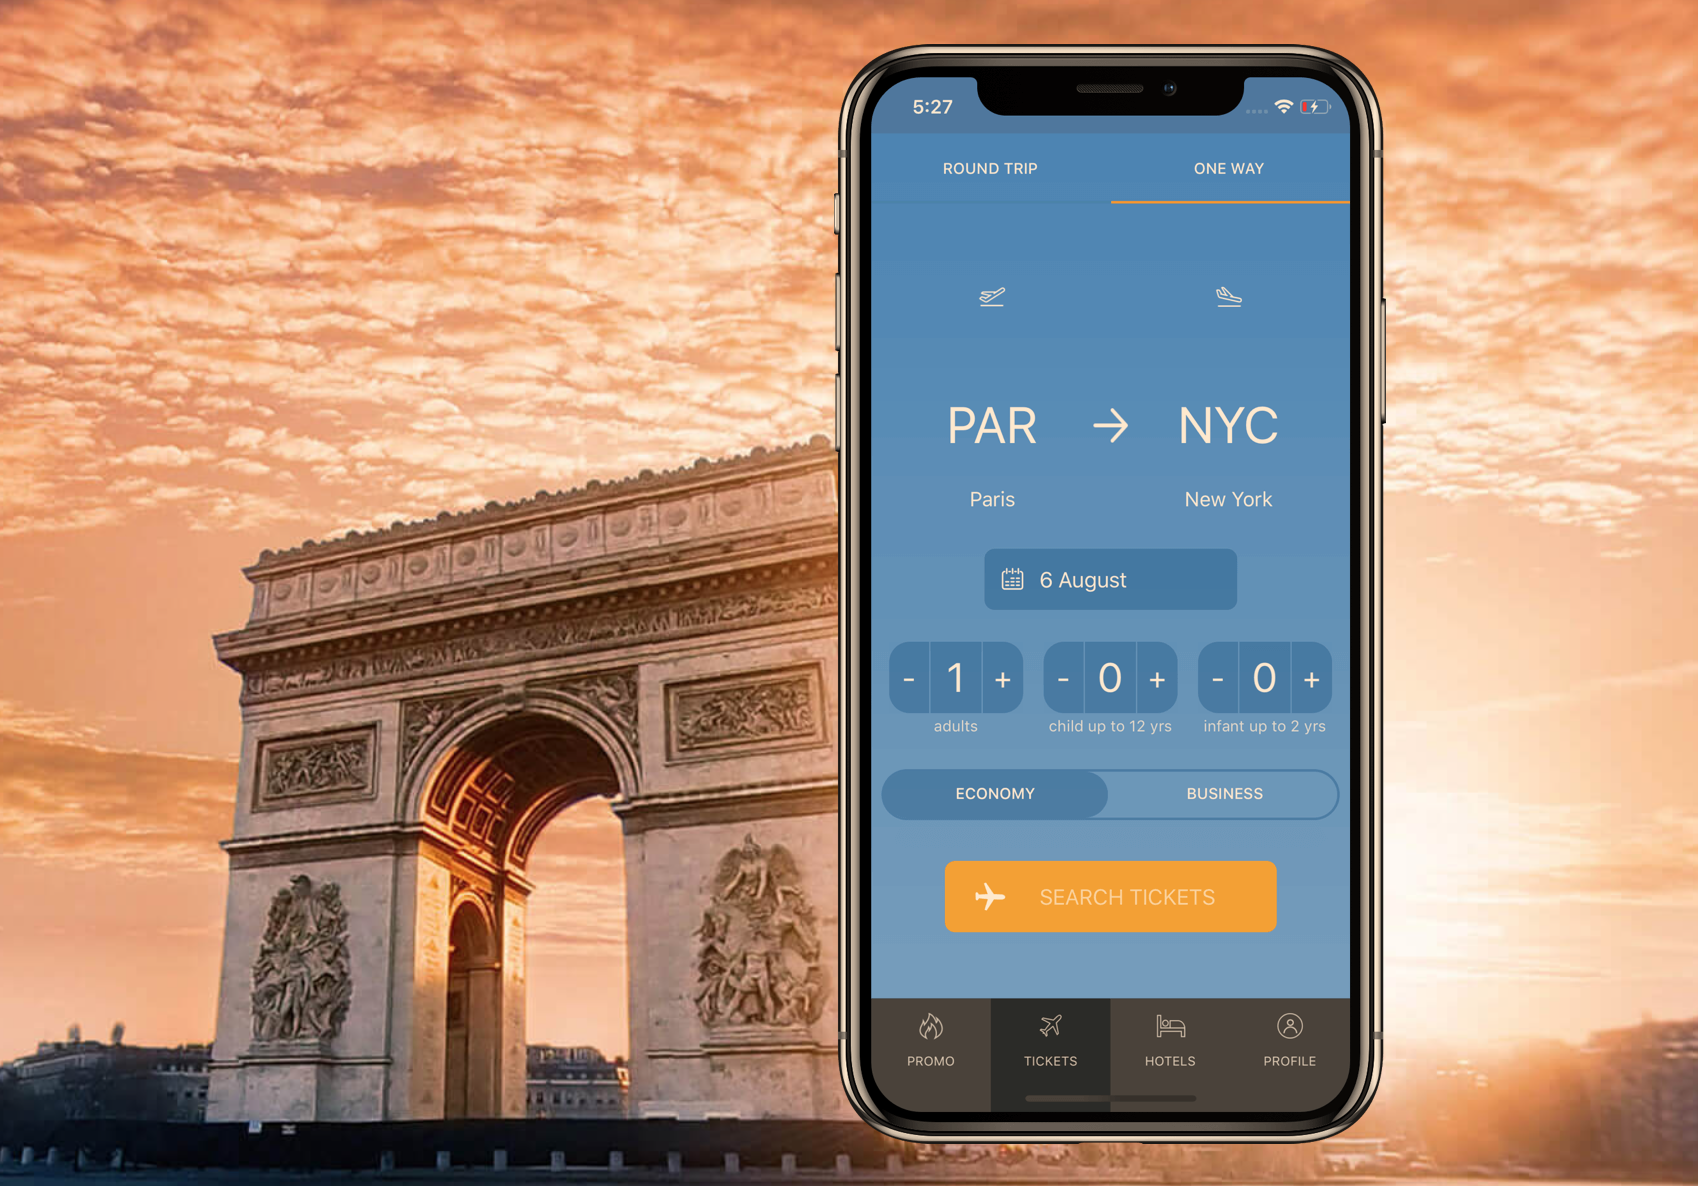 City.Travel app